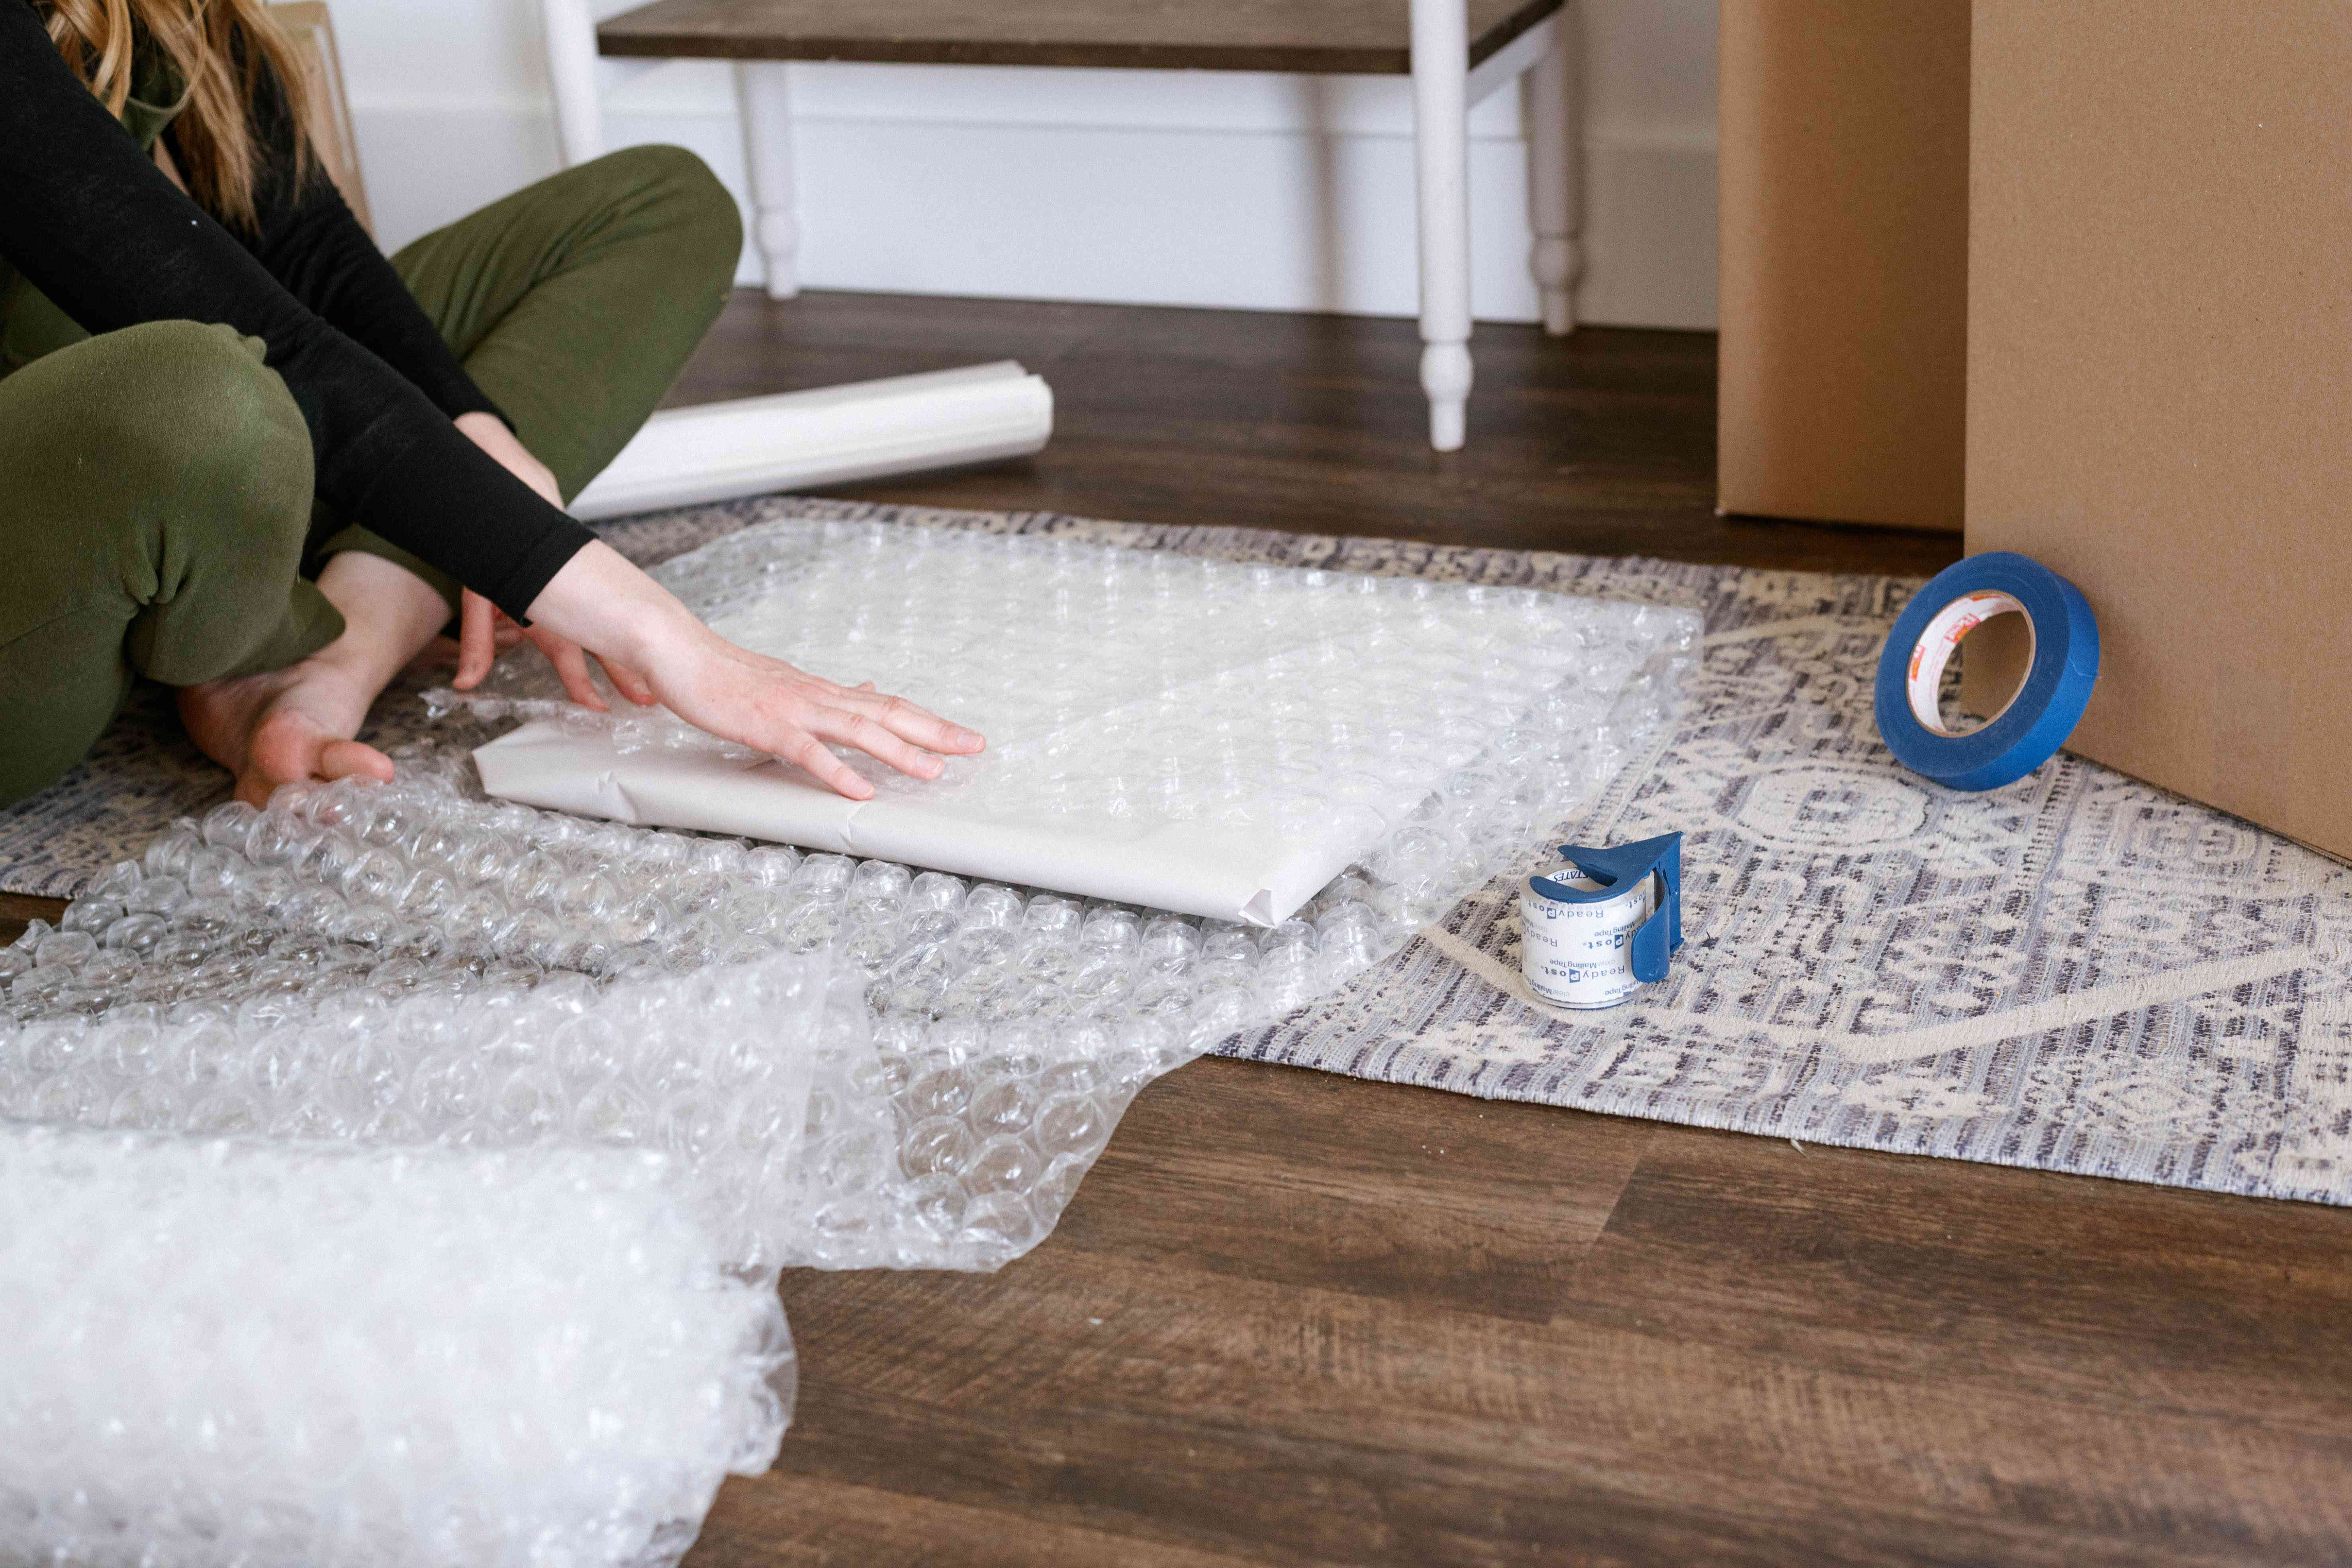 person putting bubble wrap on artwork